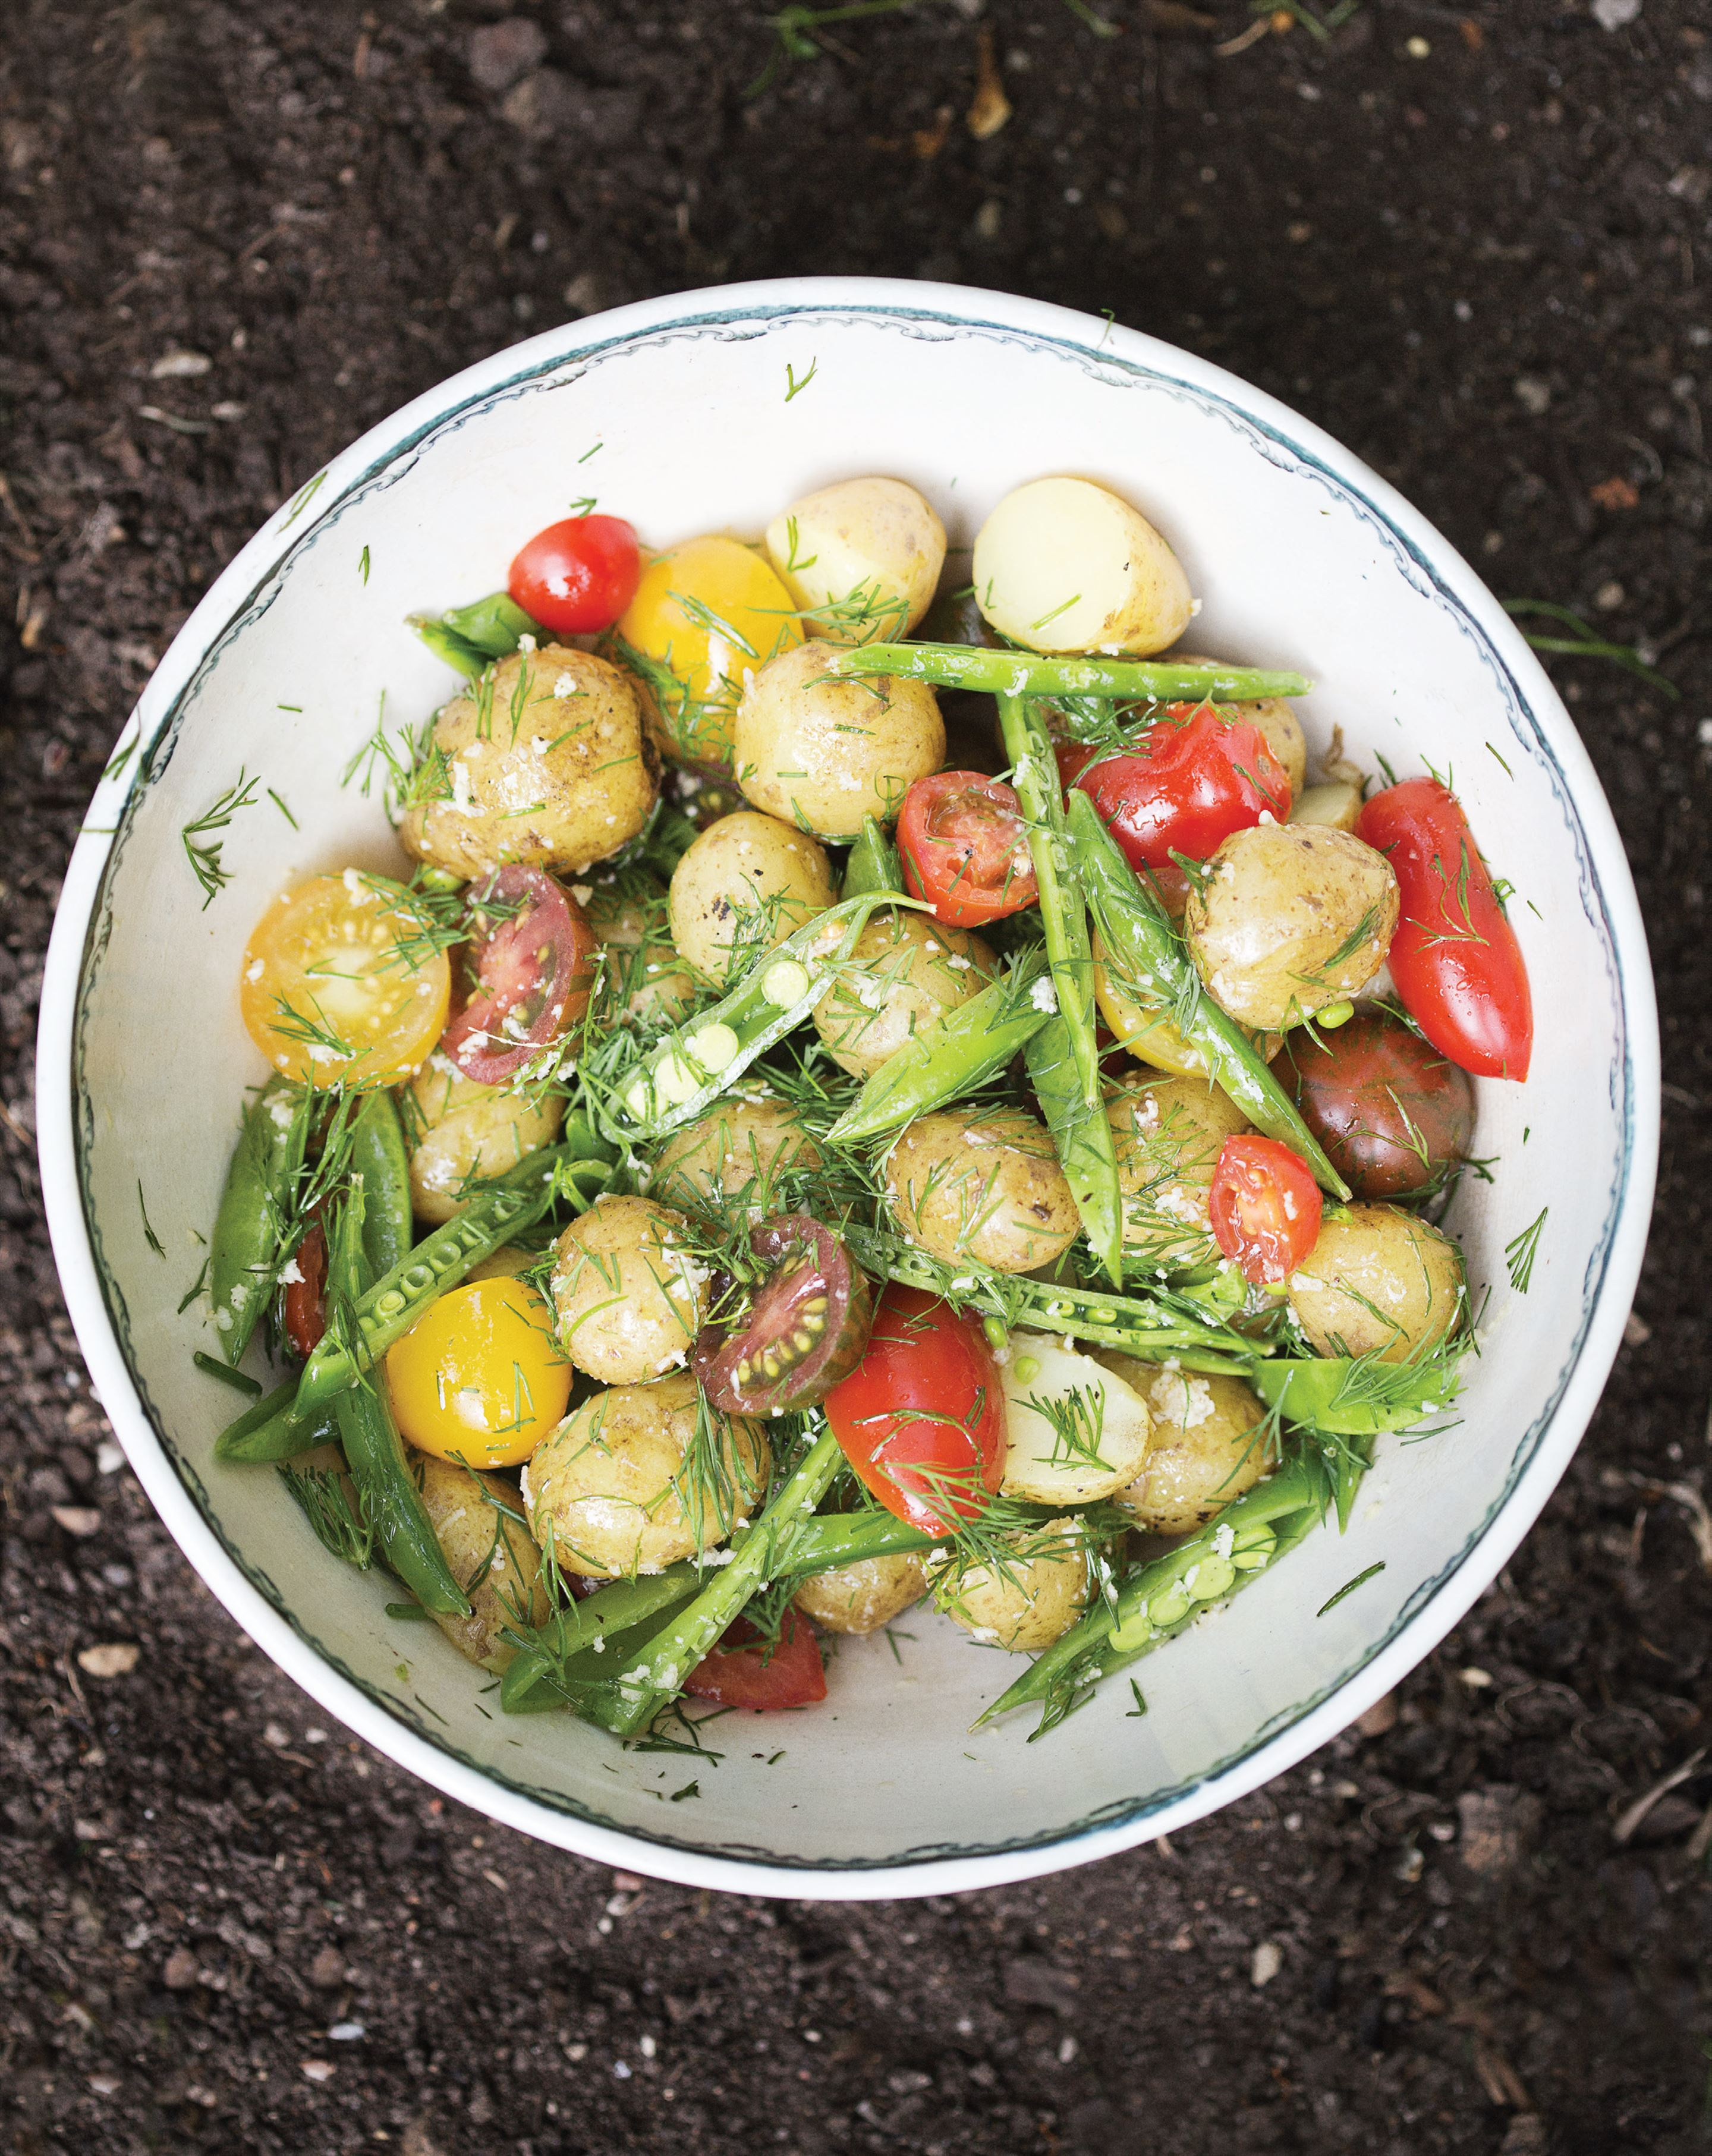 Potato salad with dill and horseradish